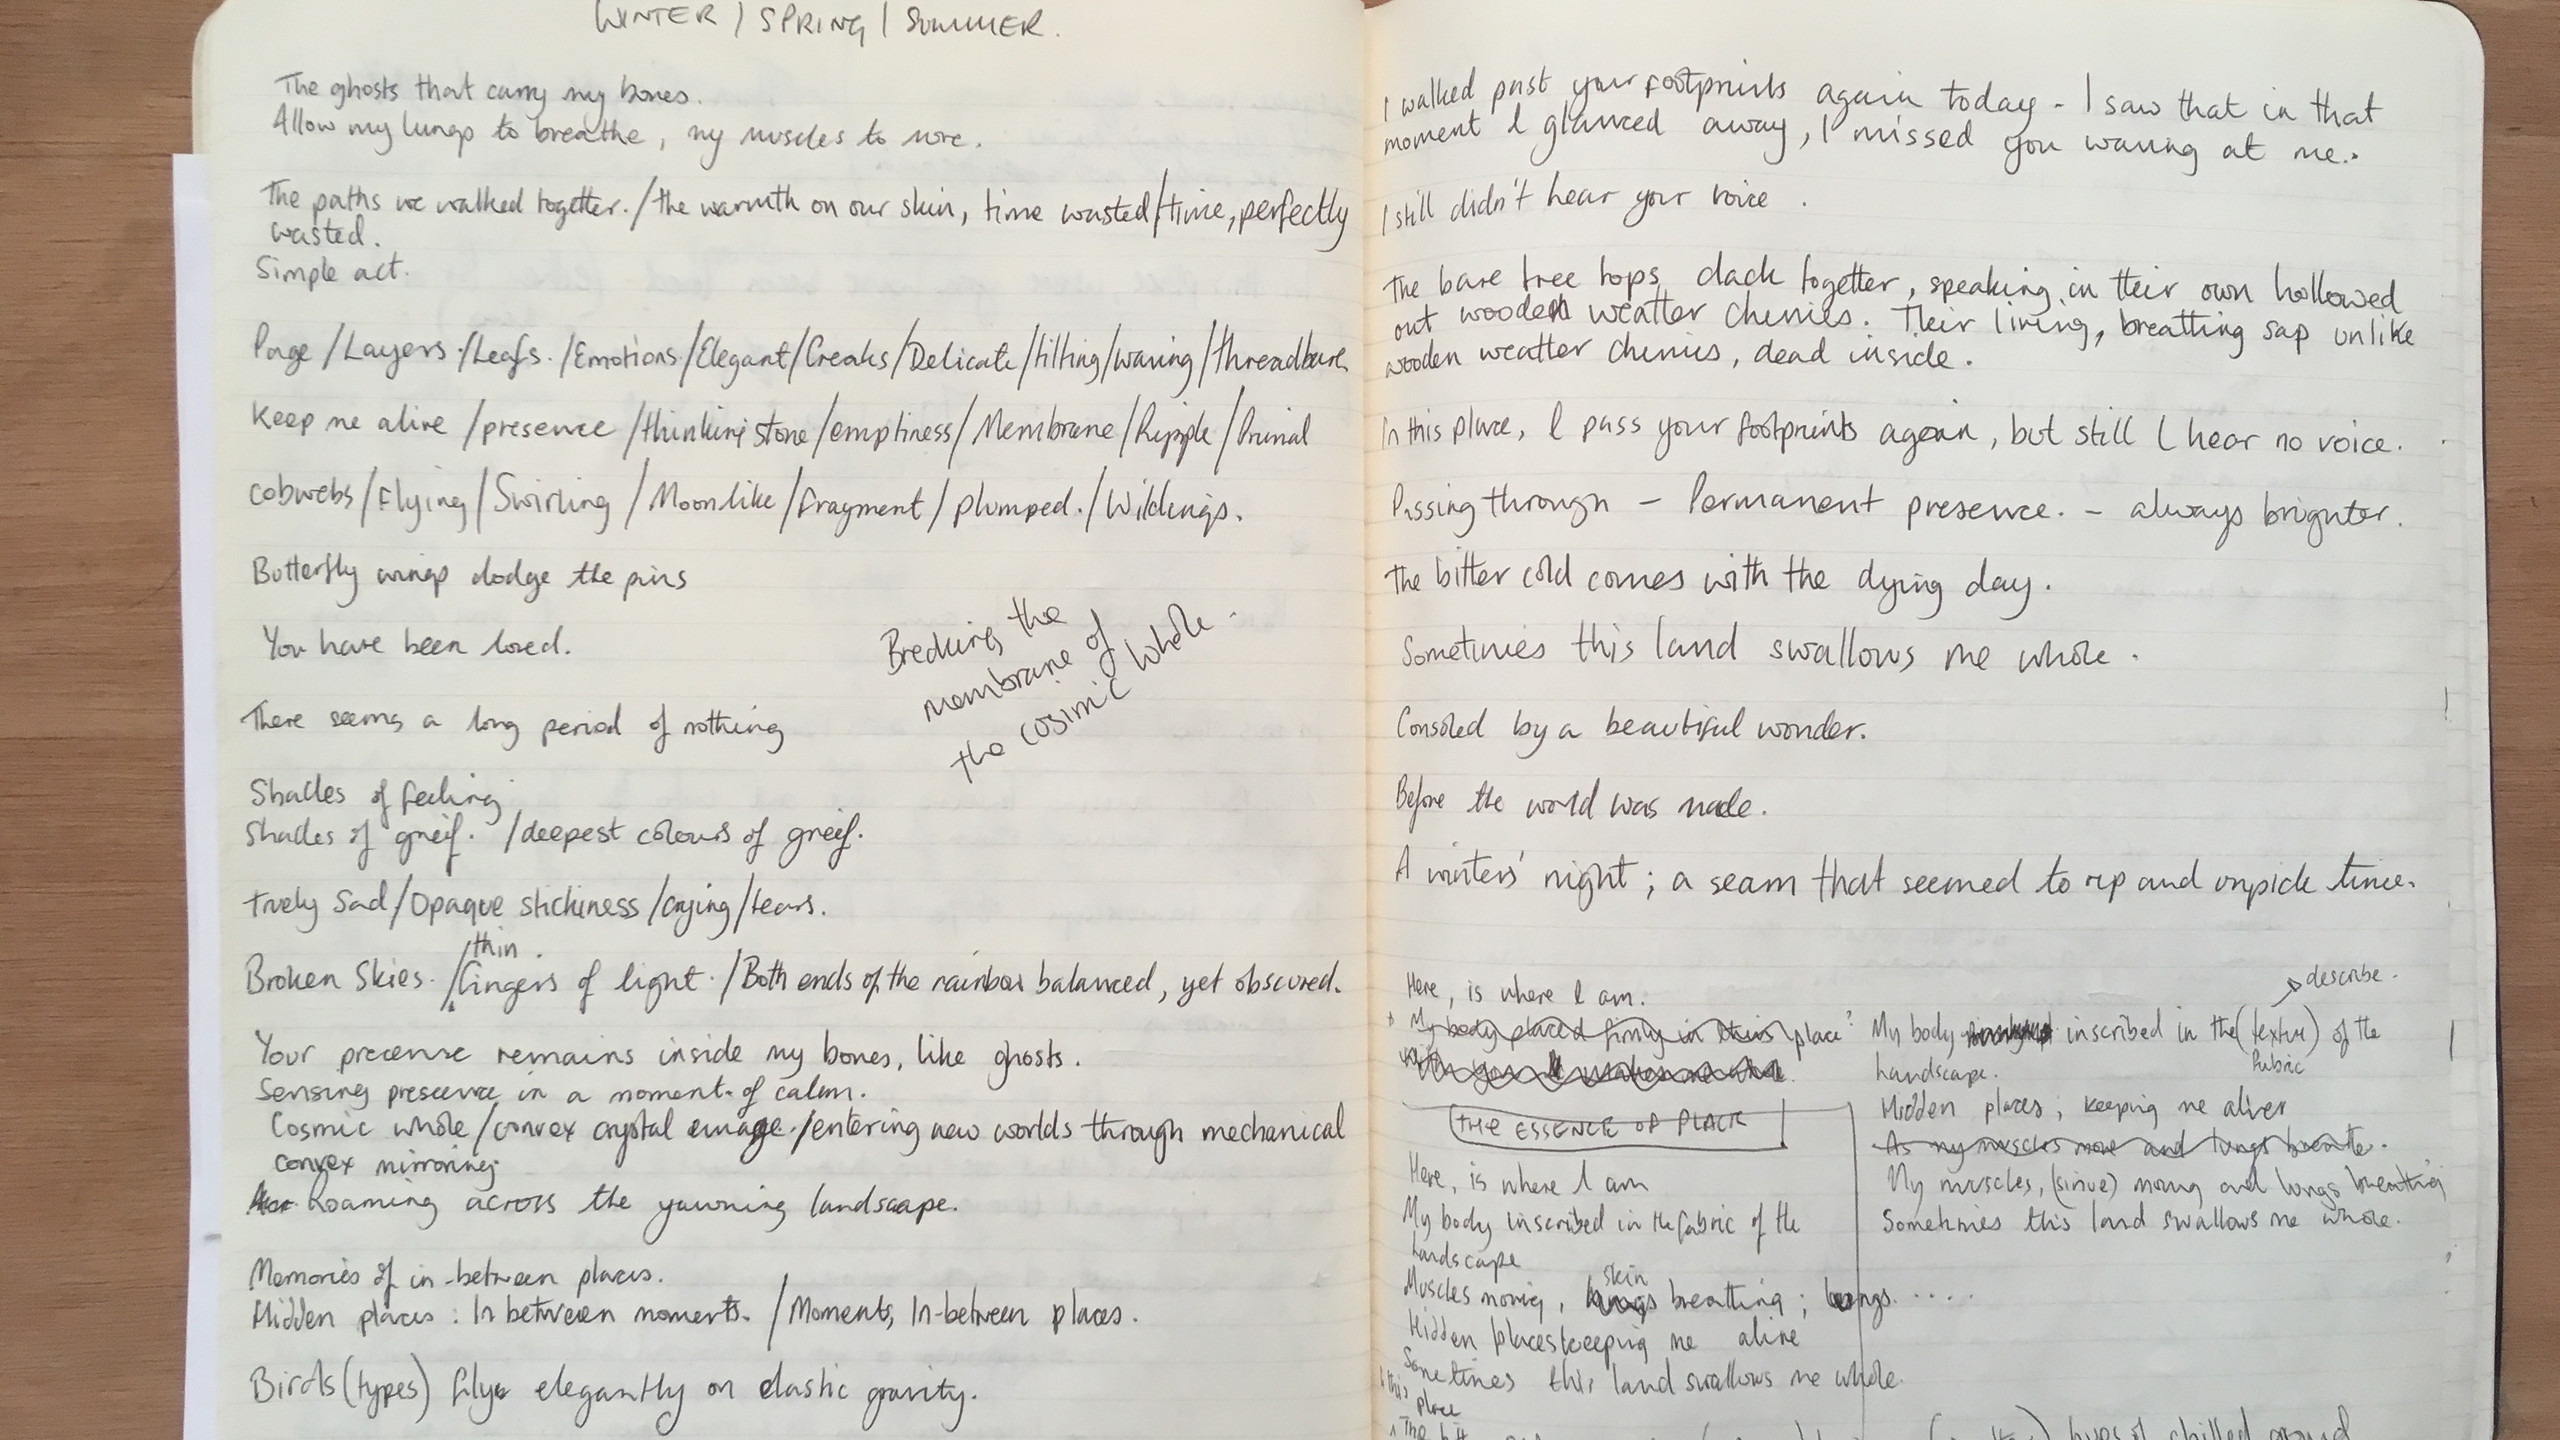 Writing 'The Essence of Place'